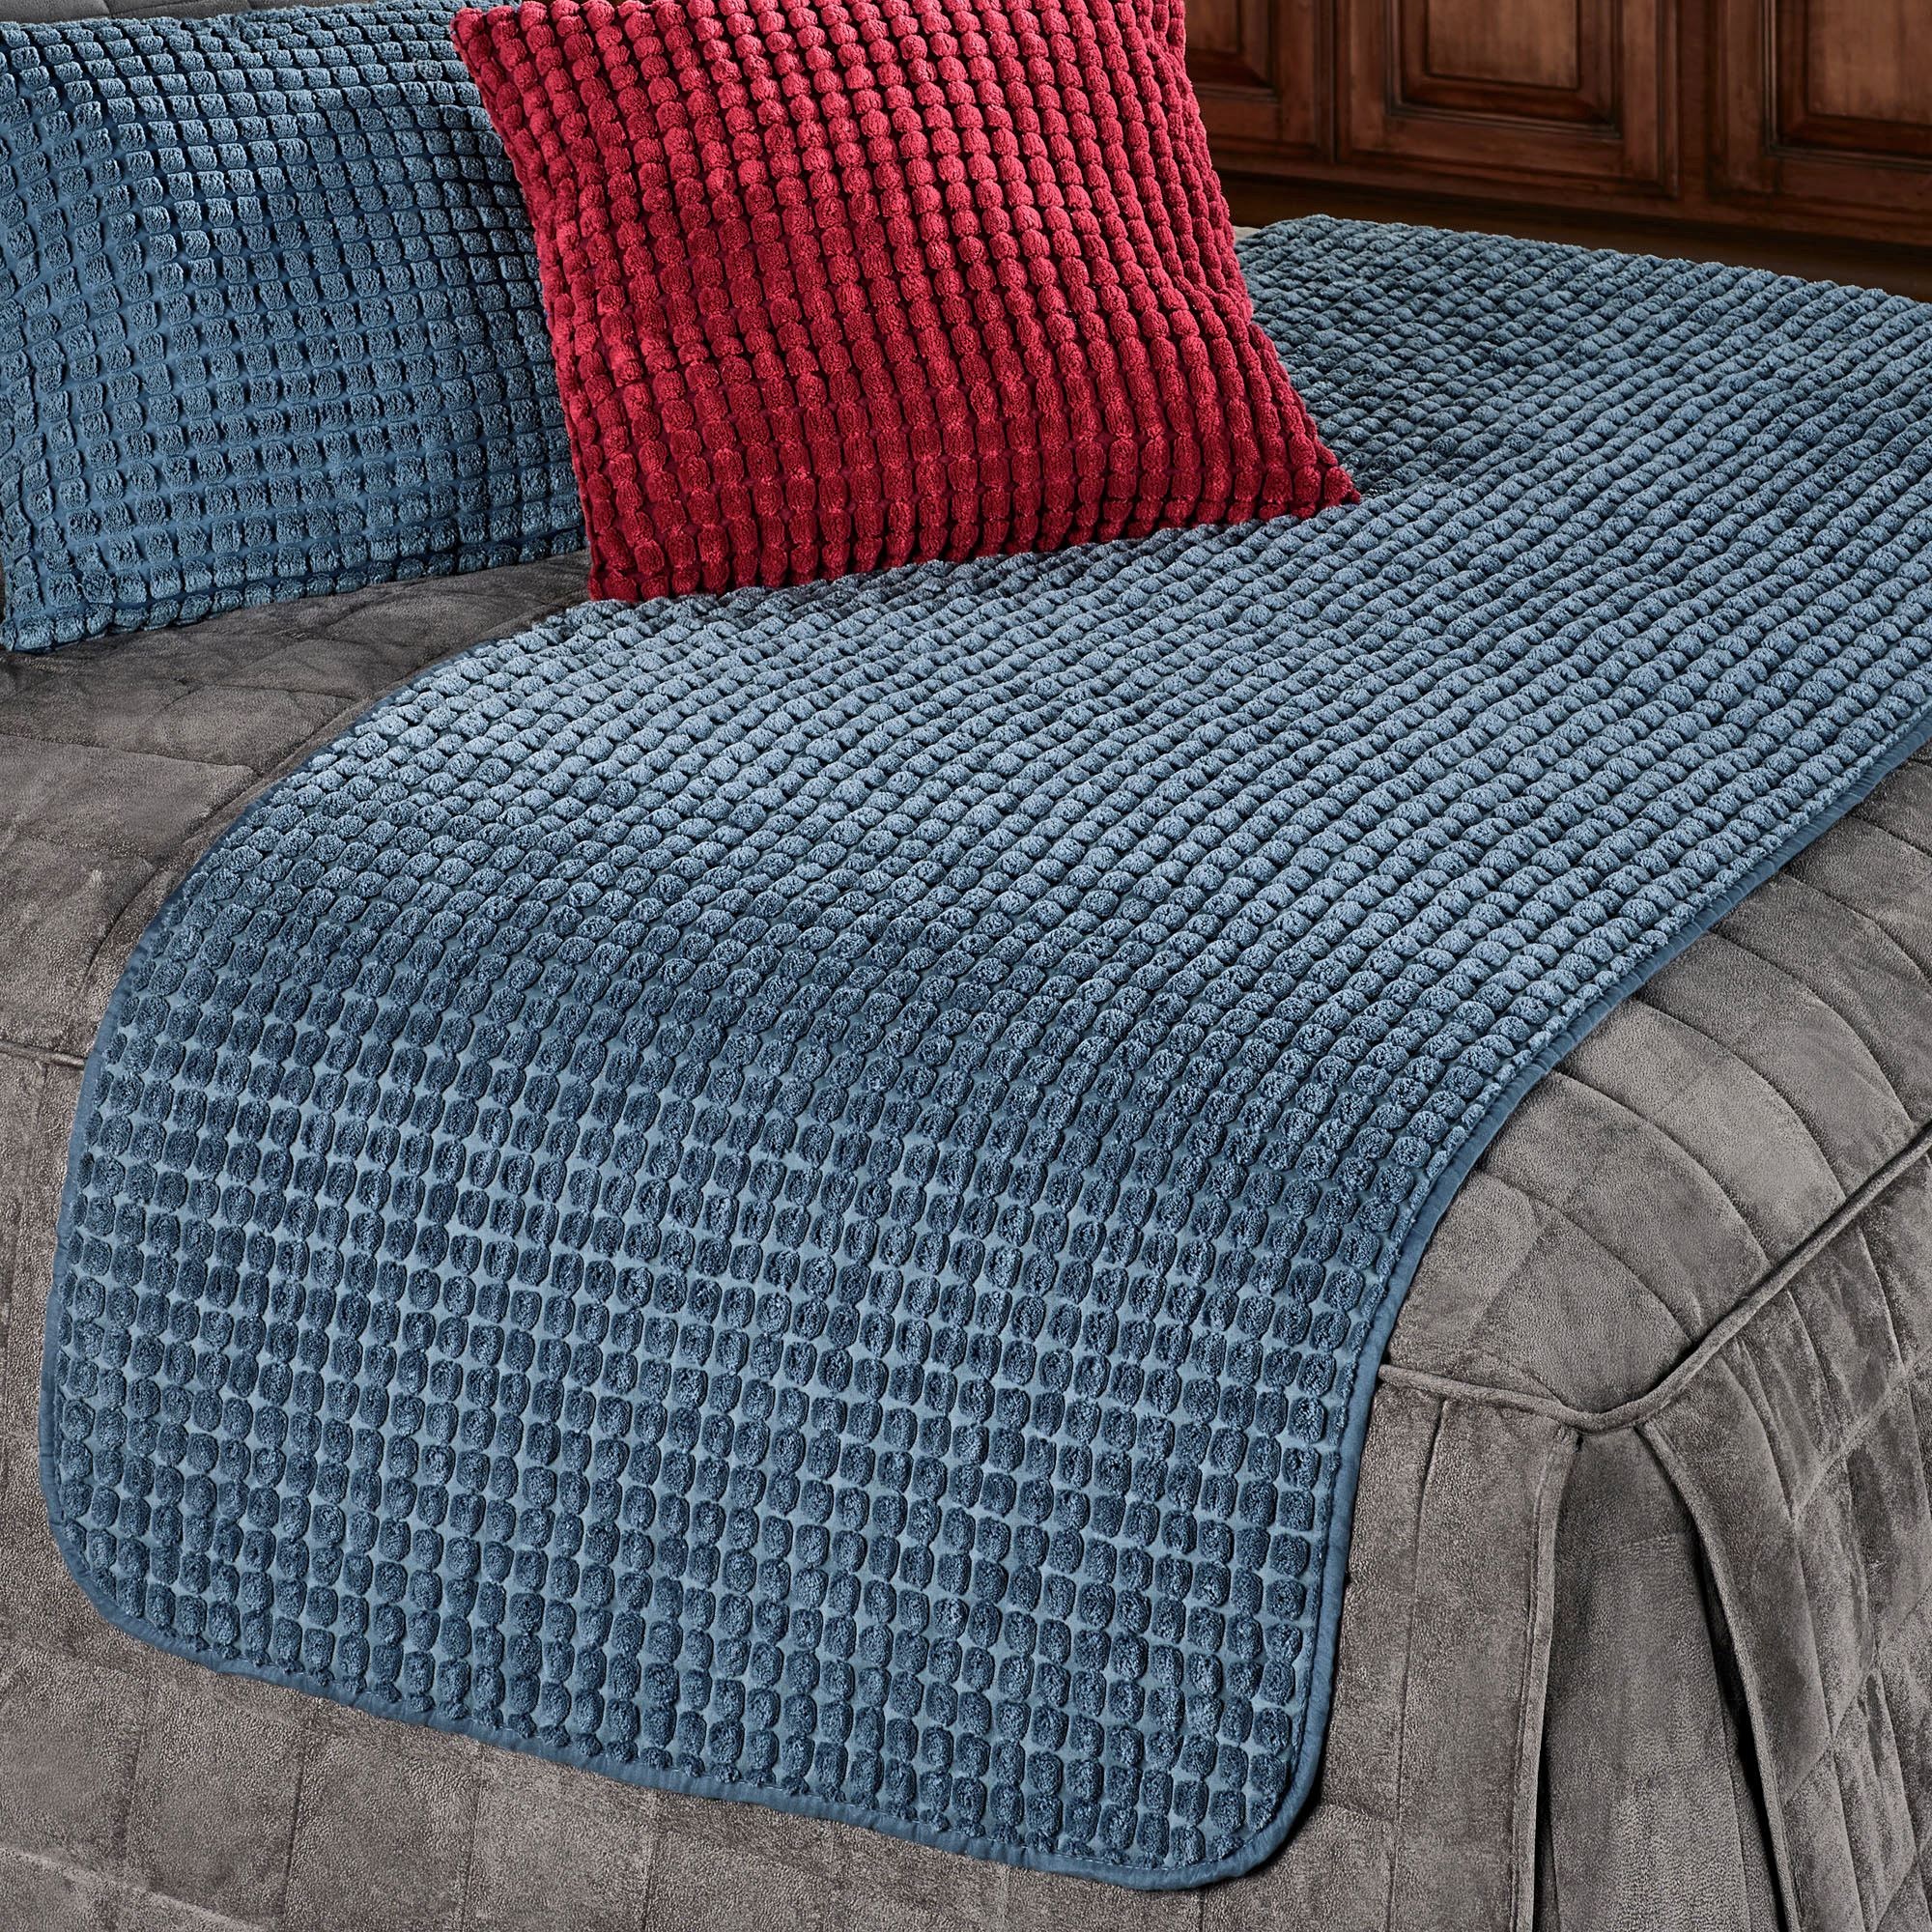 Premier Puff Pet Bed Protector in Blue